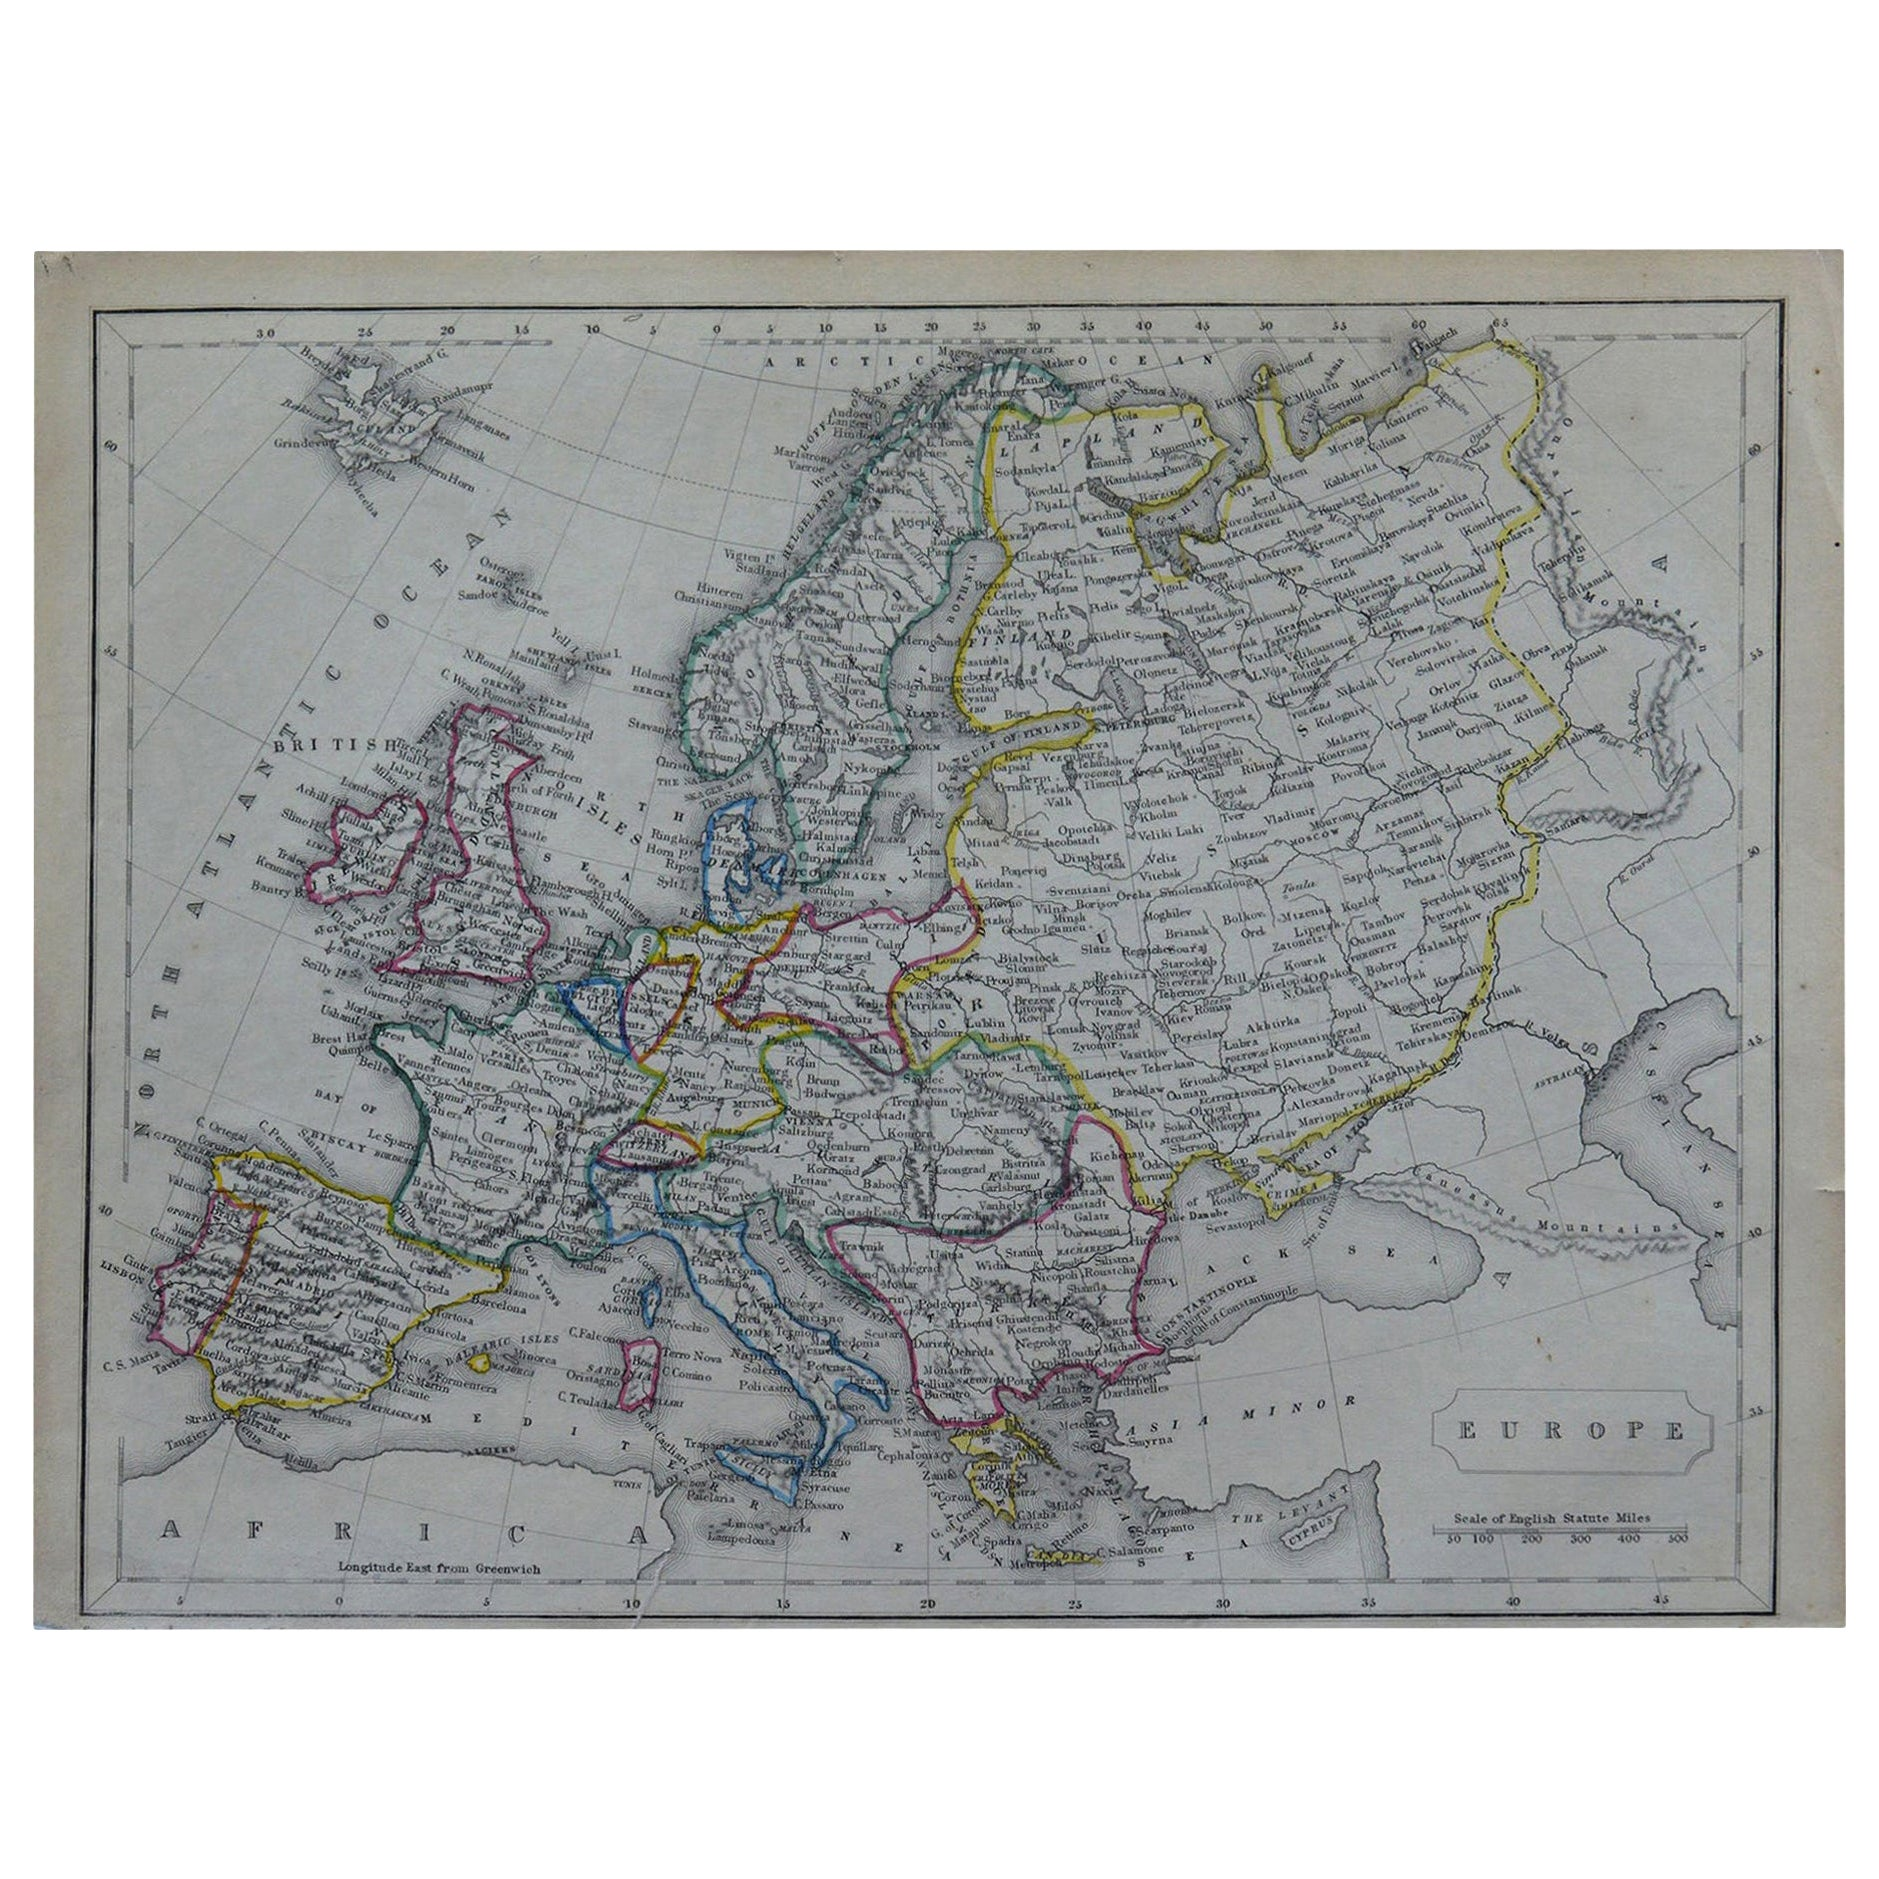 Original Antique Map of Europe by Becker, circa 1840